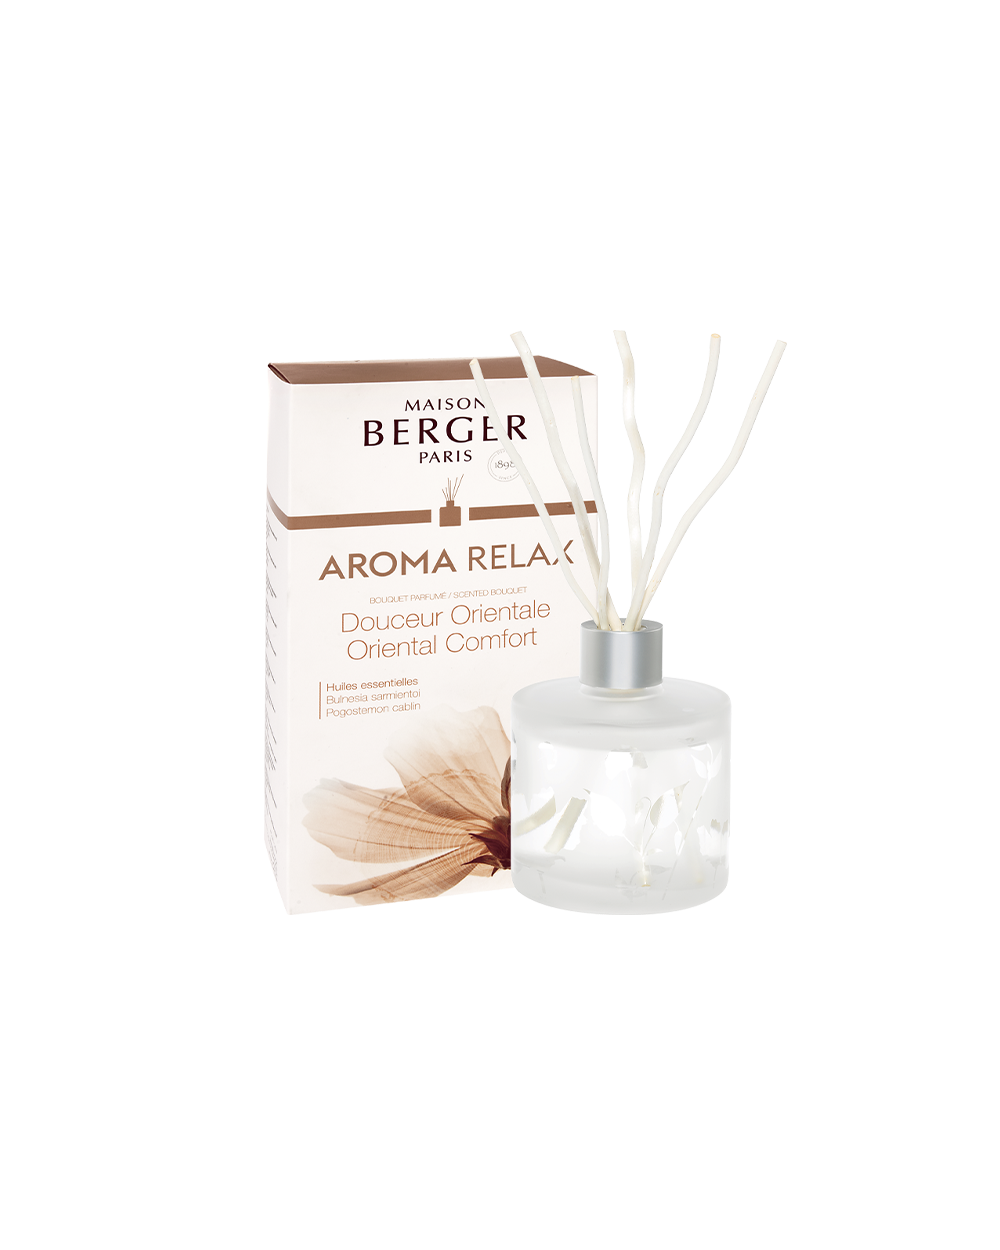 Aroma Relax